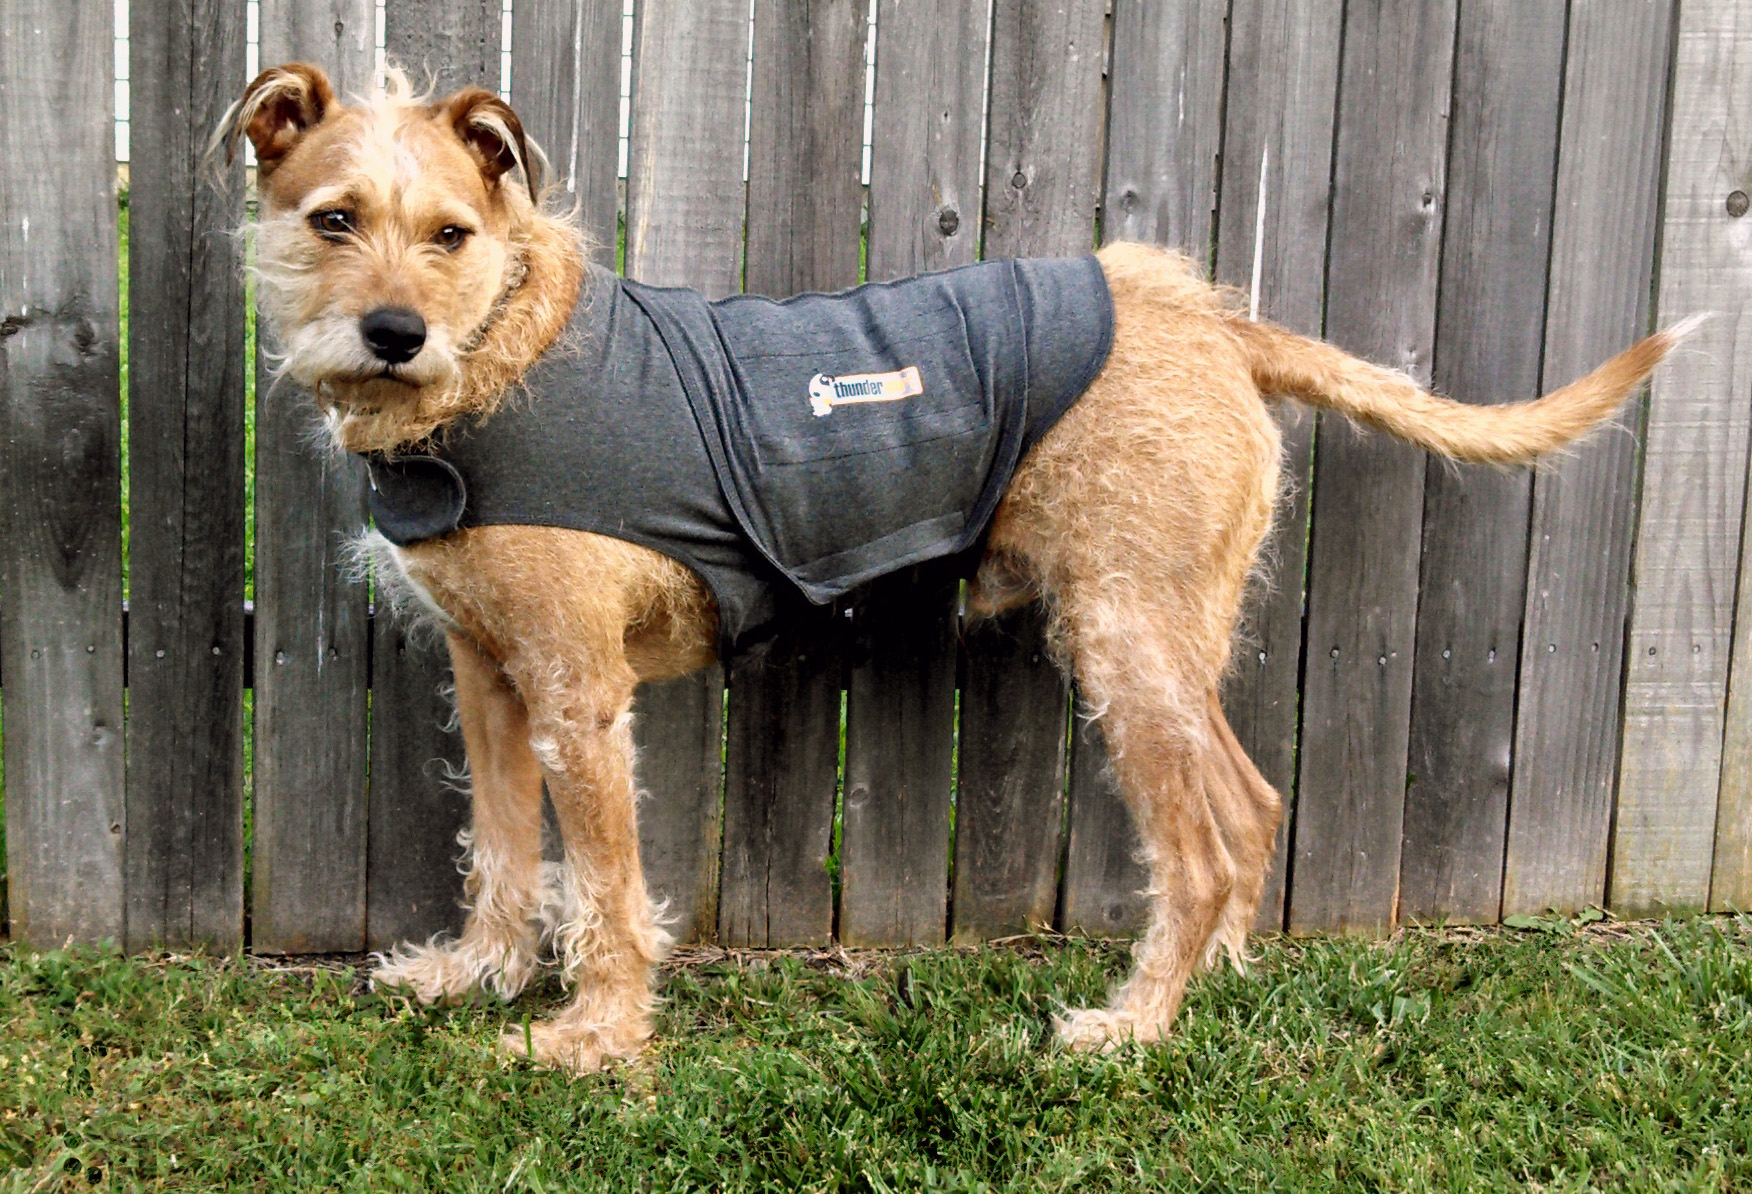 Dog wearing Thundershirt.